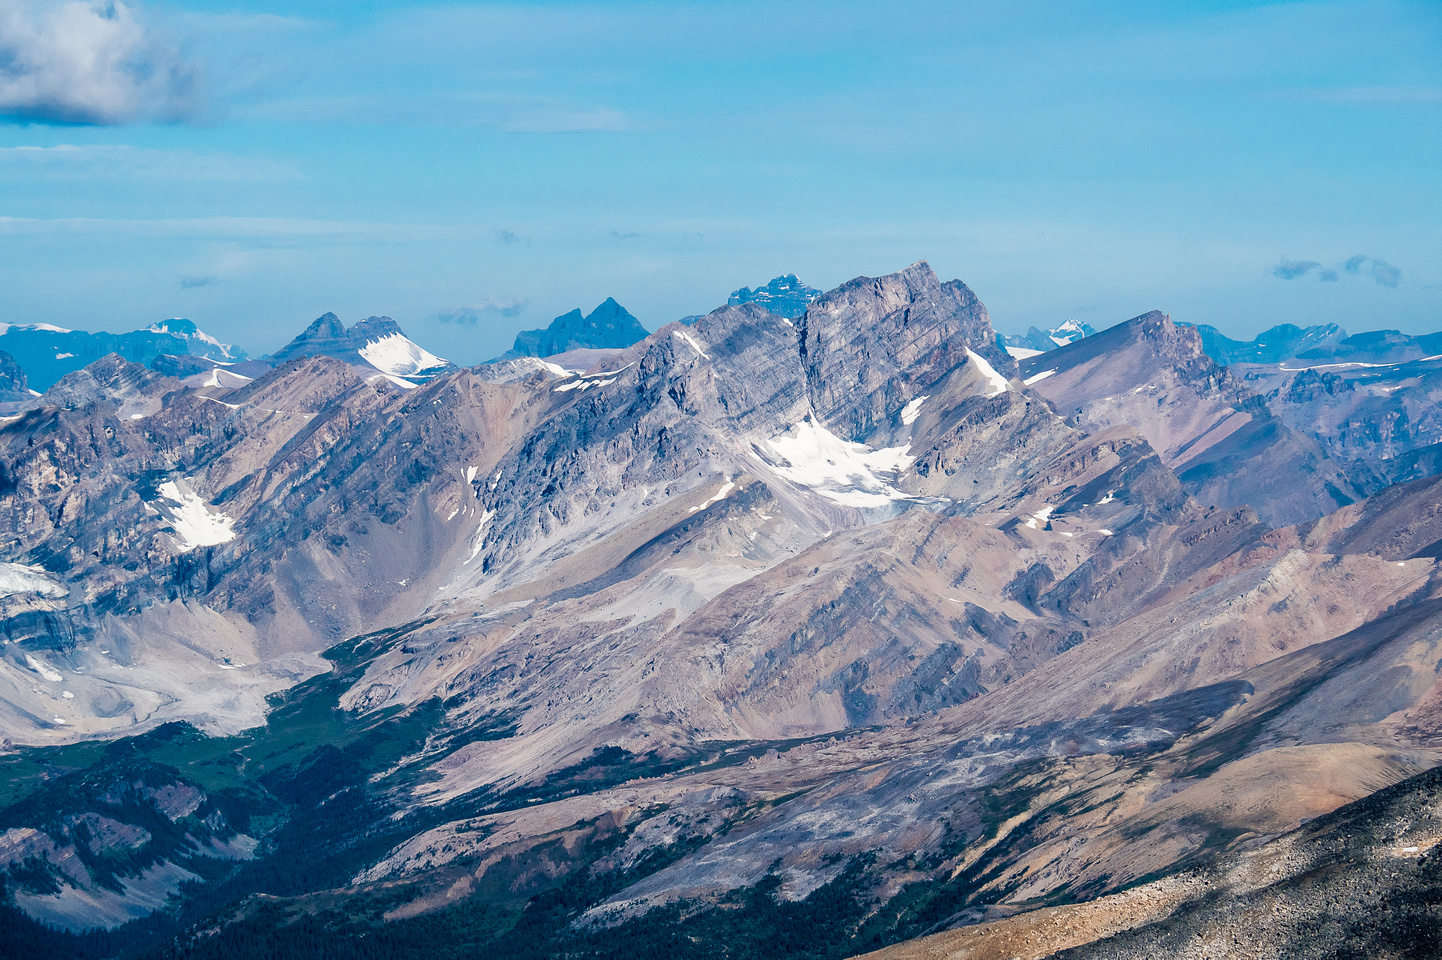 Quill Peak rises over the Siffleur Wilderness Area.